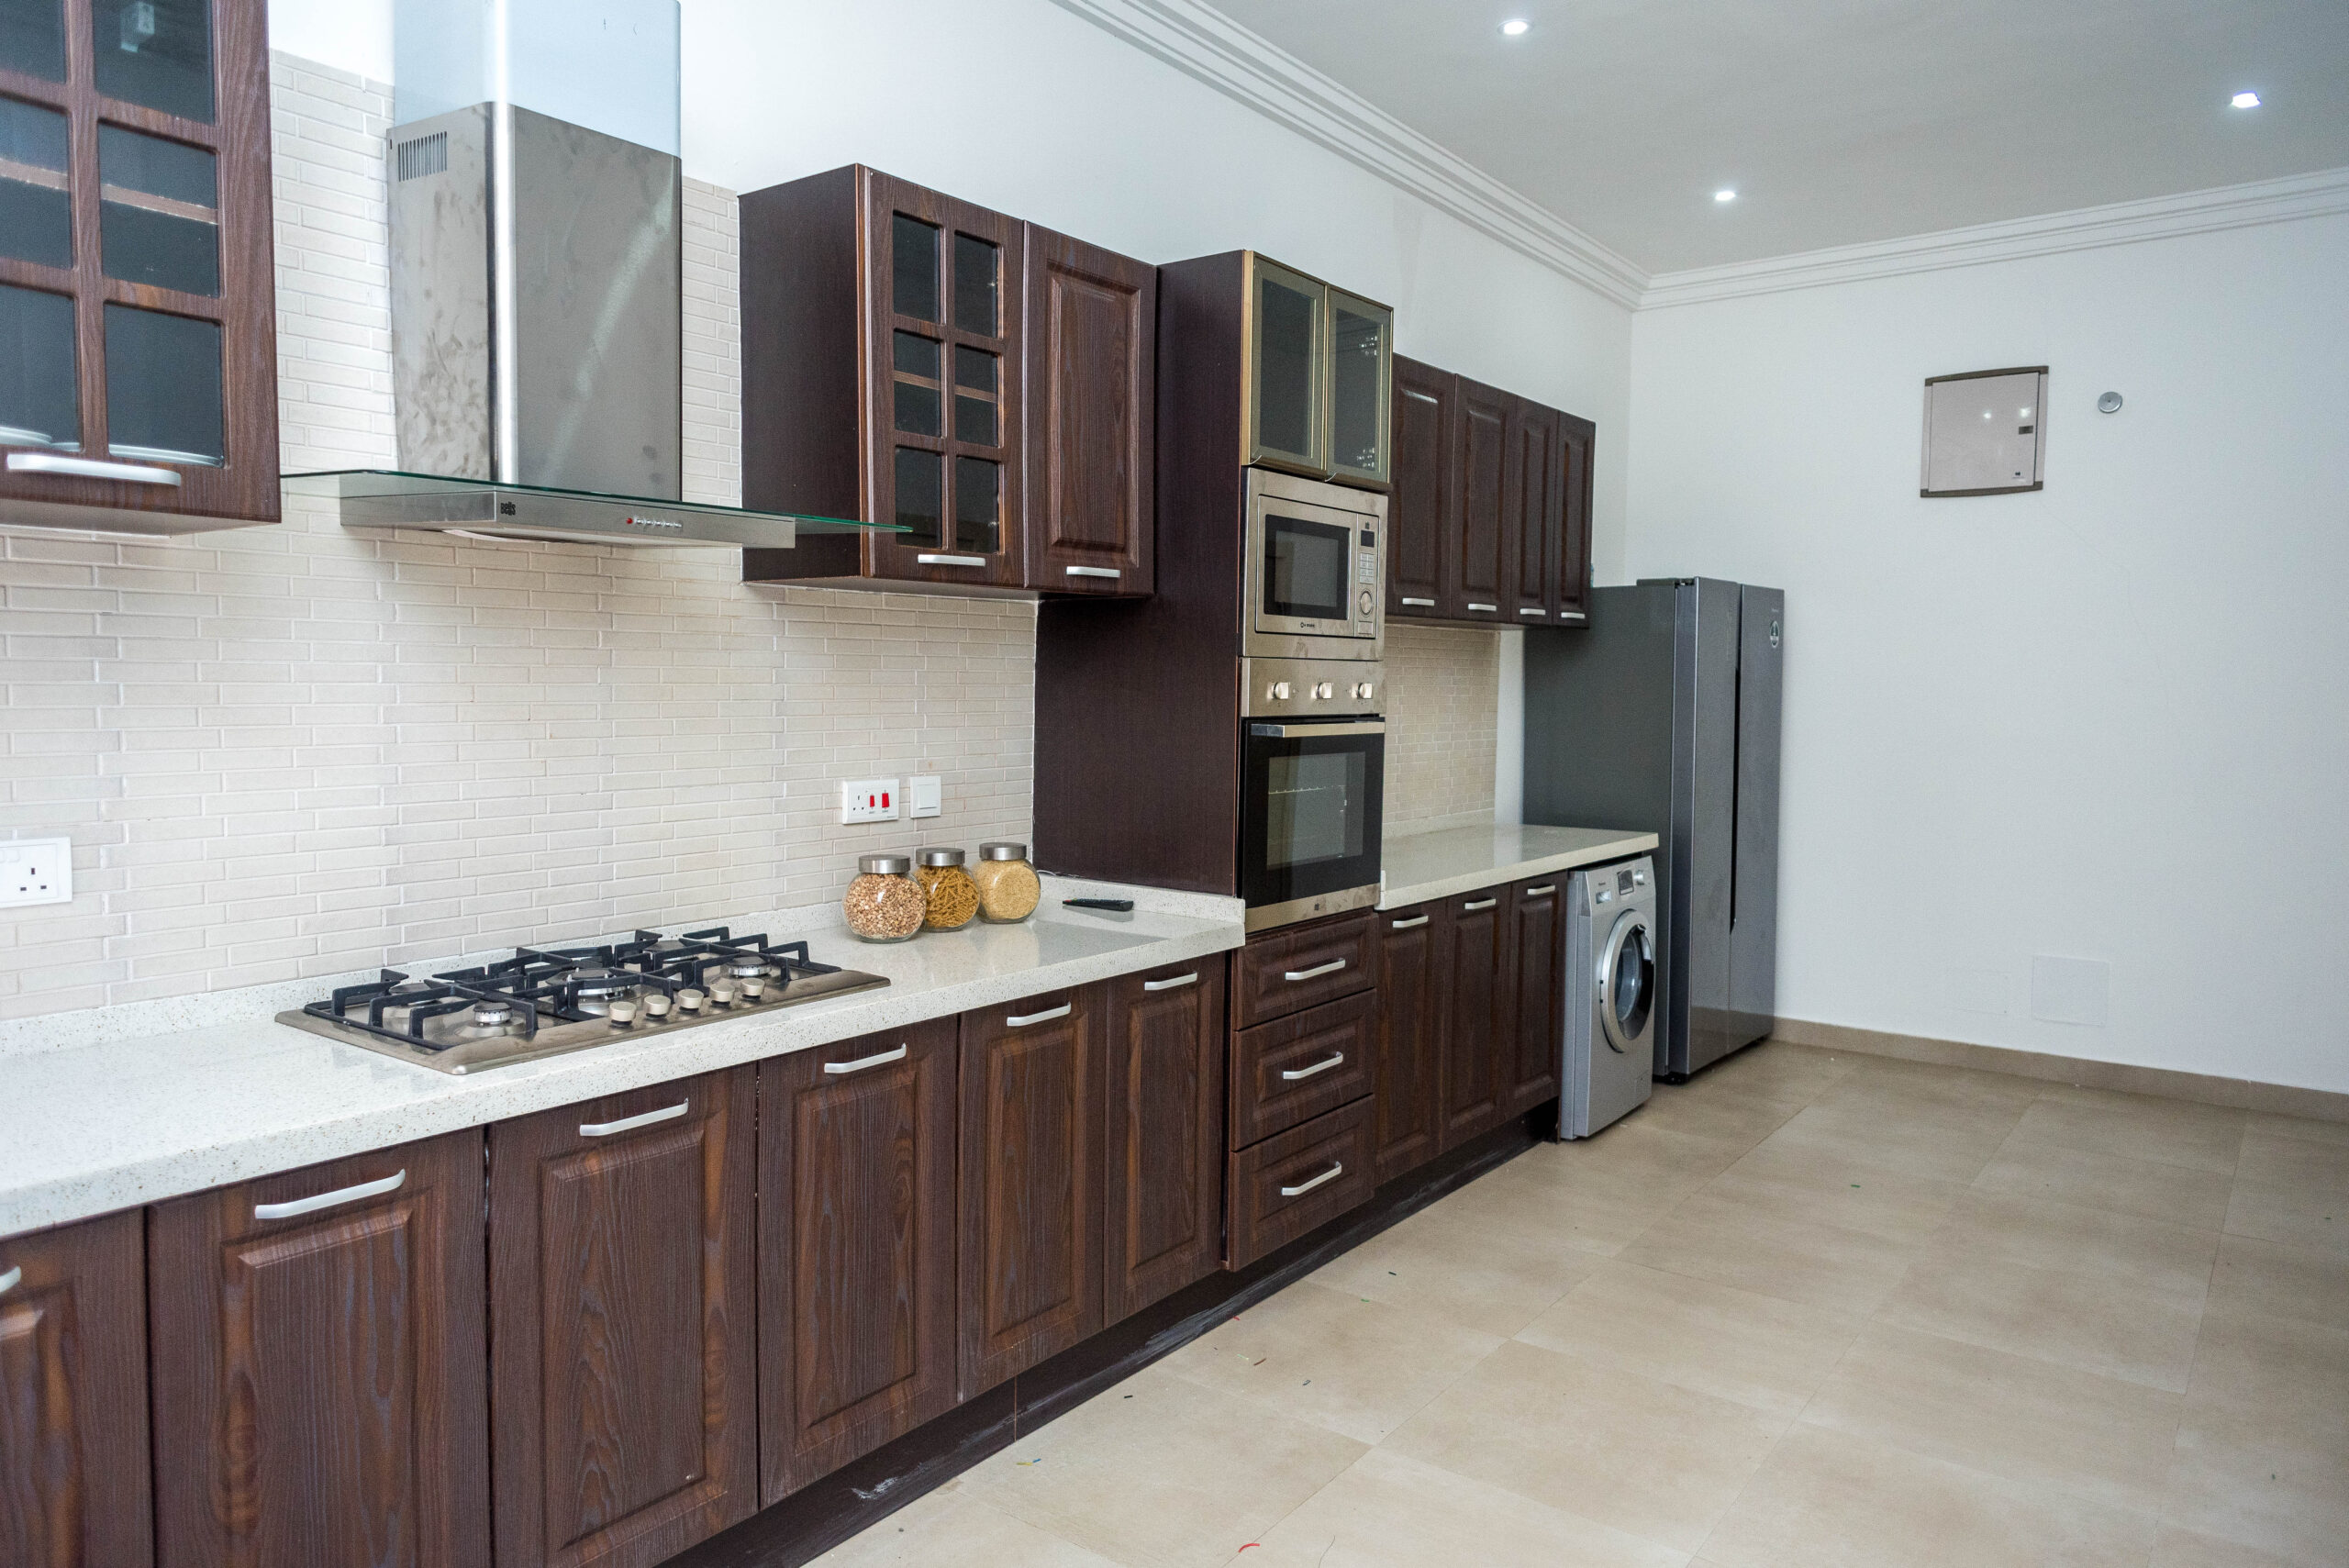 3‌ ‌Nos‌ ‌4-bedroom‌ ‌Serviced‌ ‌Terrace‌ ‌house‌ ‌Domestic‌ ‌Quarters